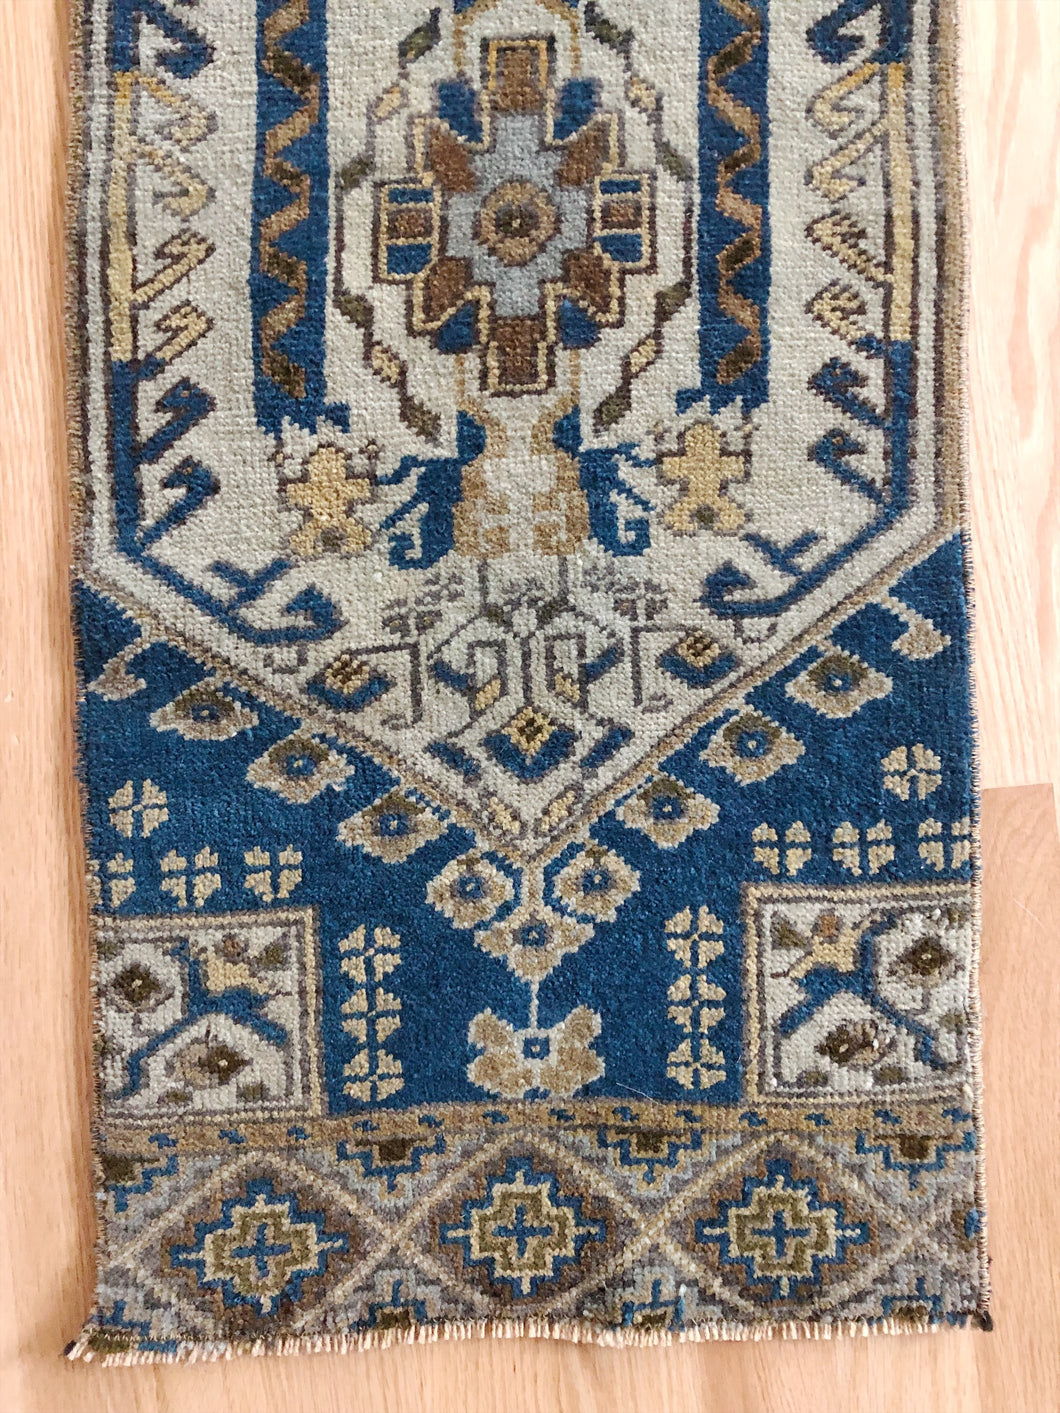 Aria, vintage Turkish yastik